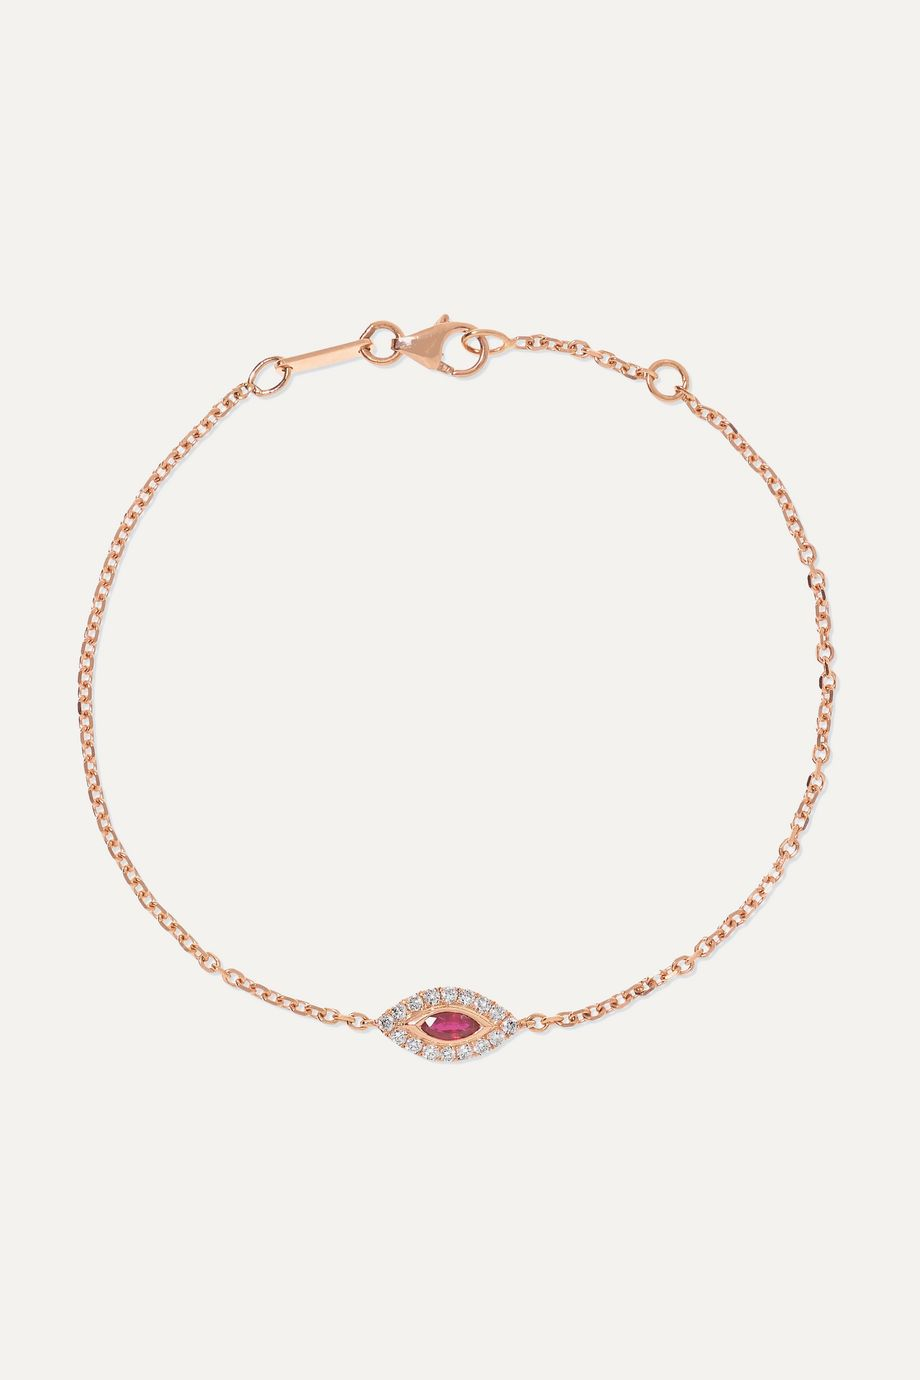 Anita Ko Evil Eye 18-karat rose gold, ruby and diamond bracelet